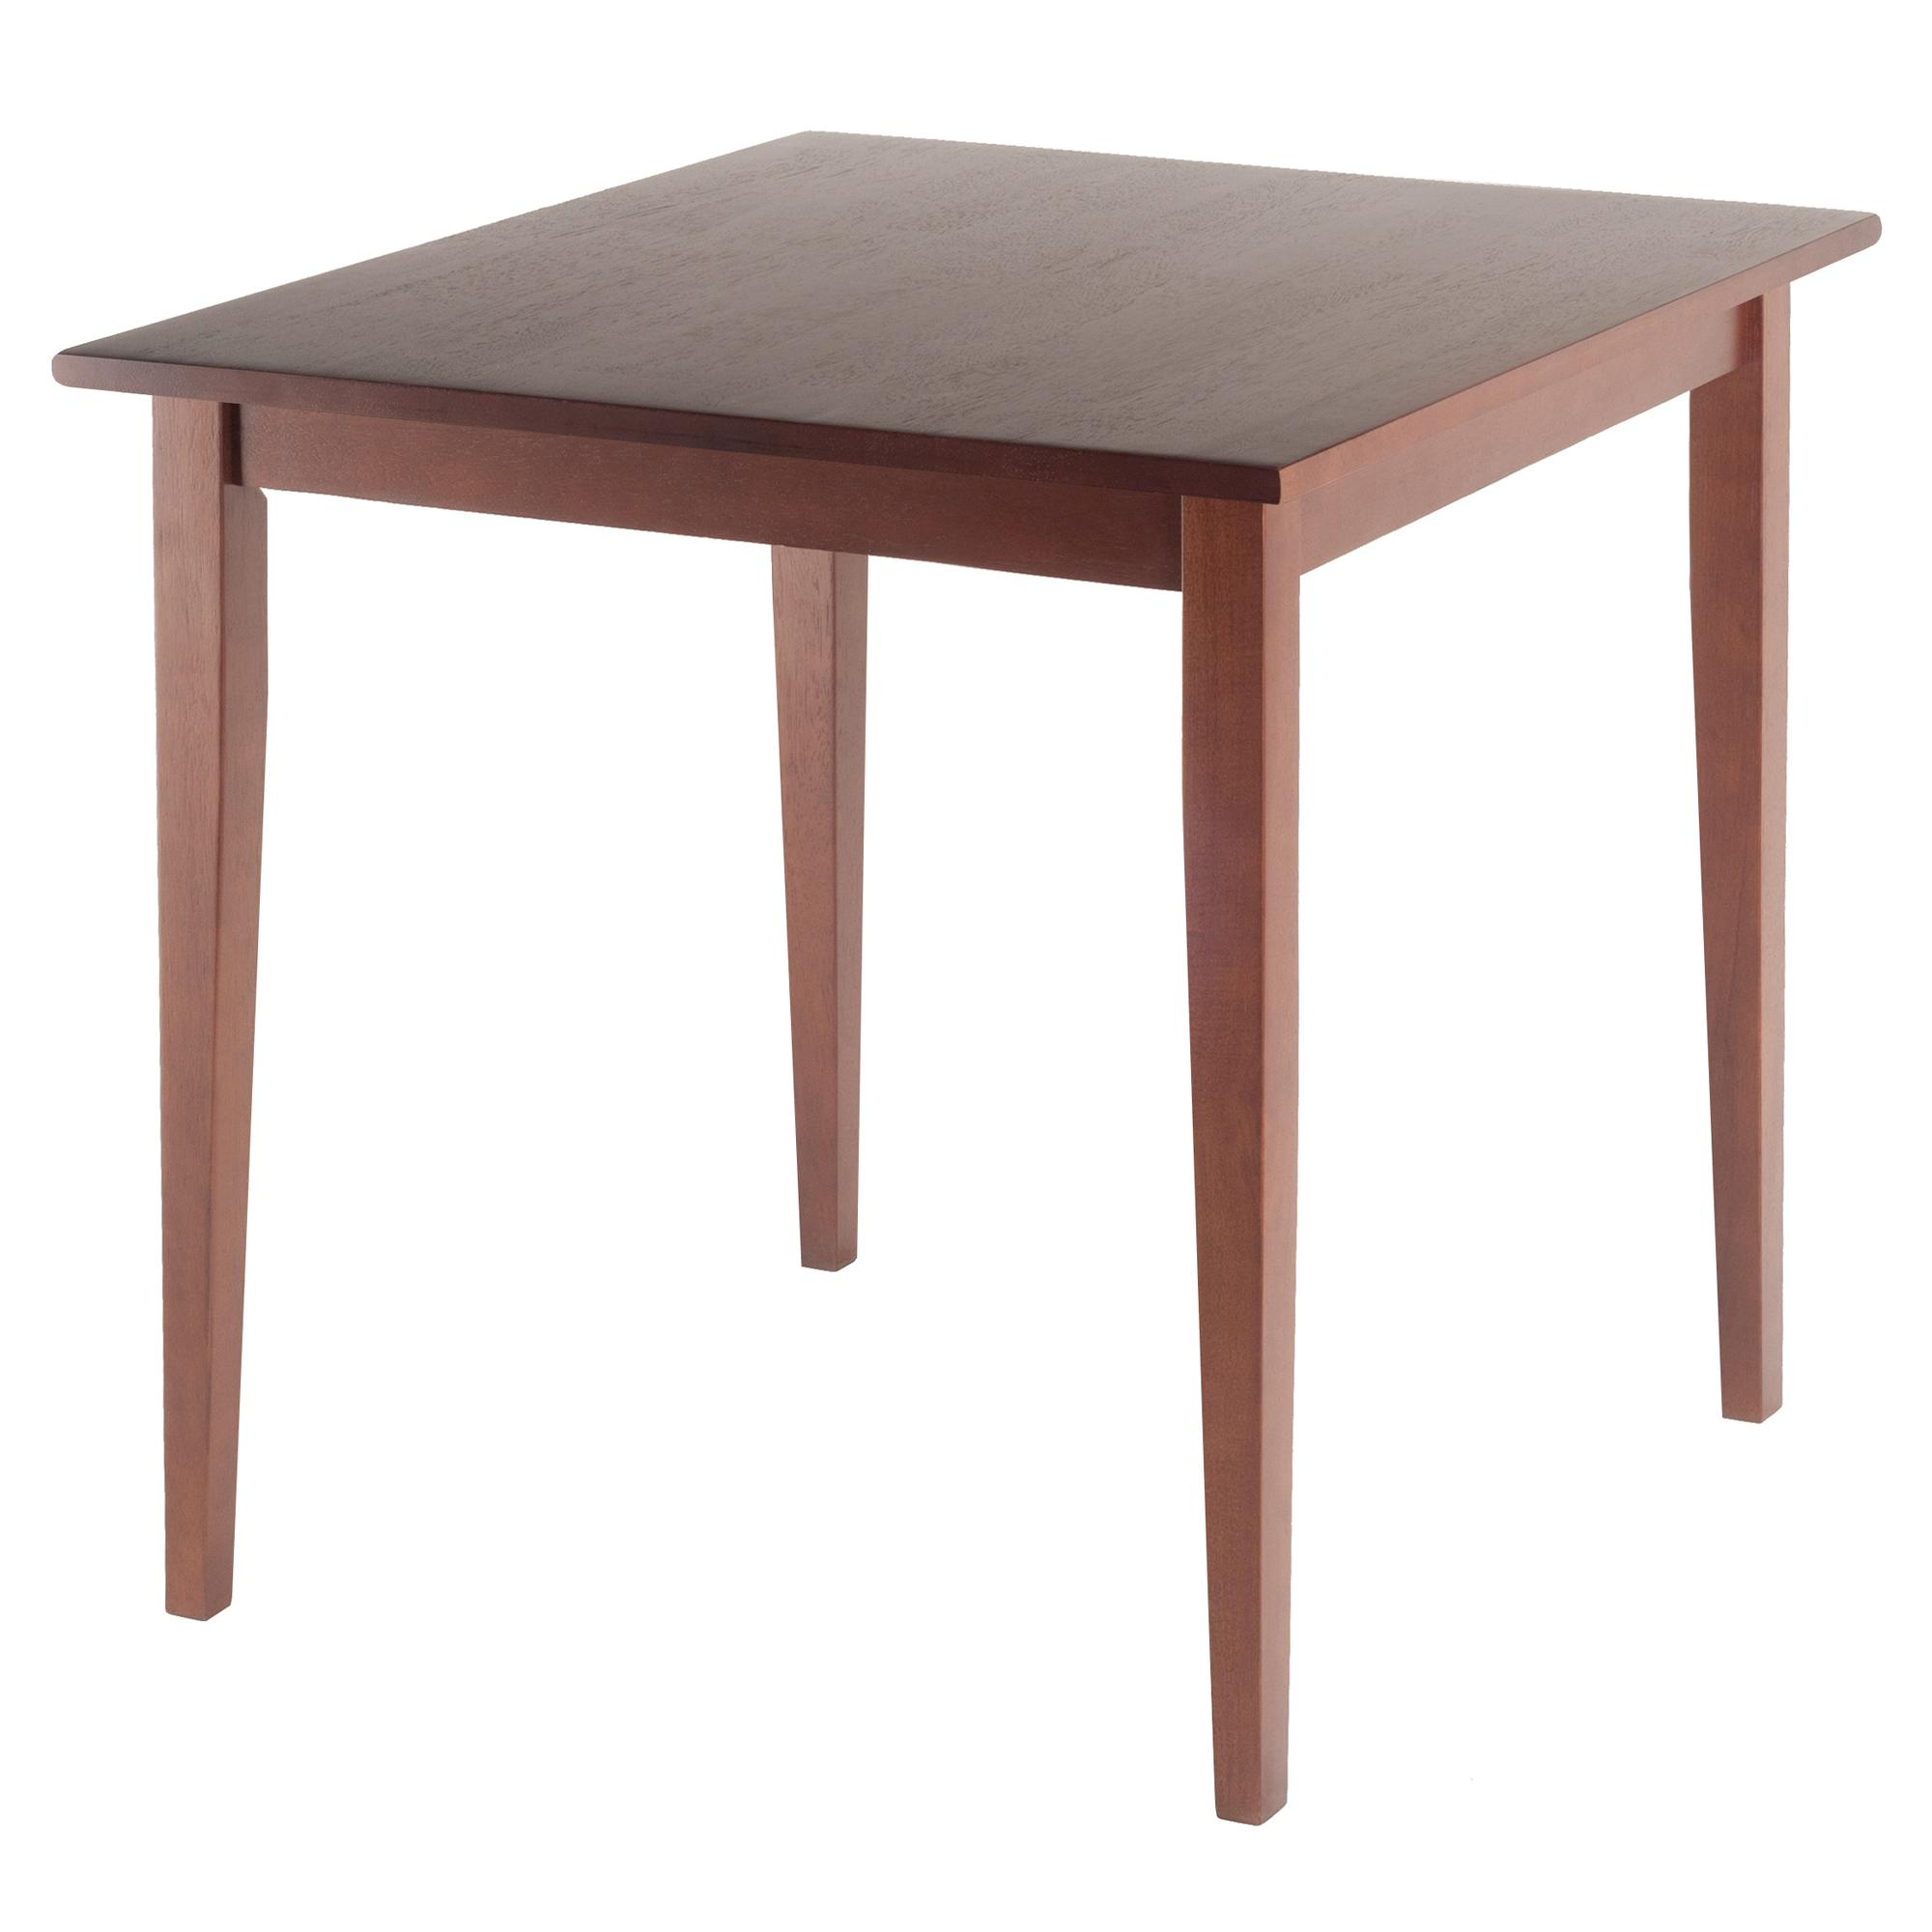 Square Dining Table With Bench: Winsome Wood Groveland Square Dining Table In